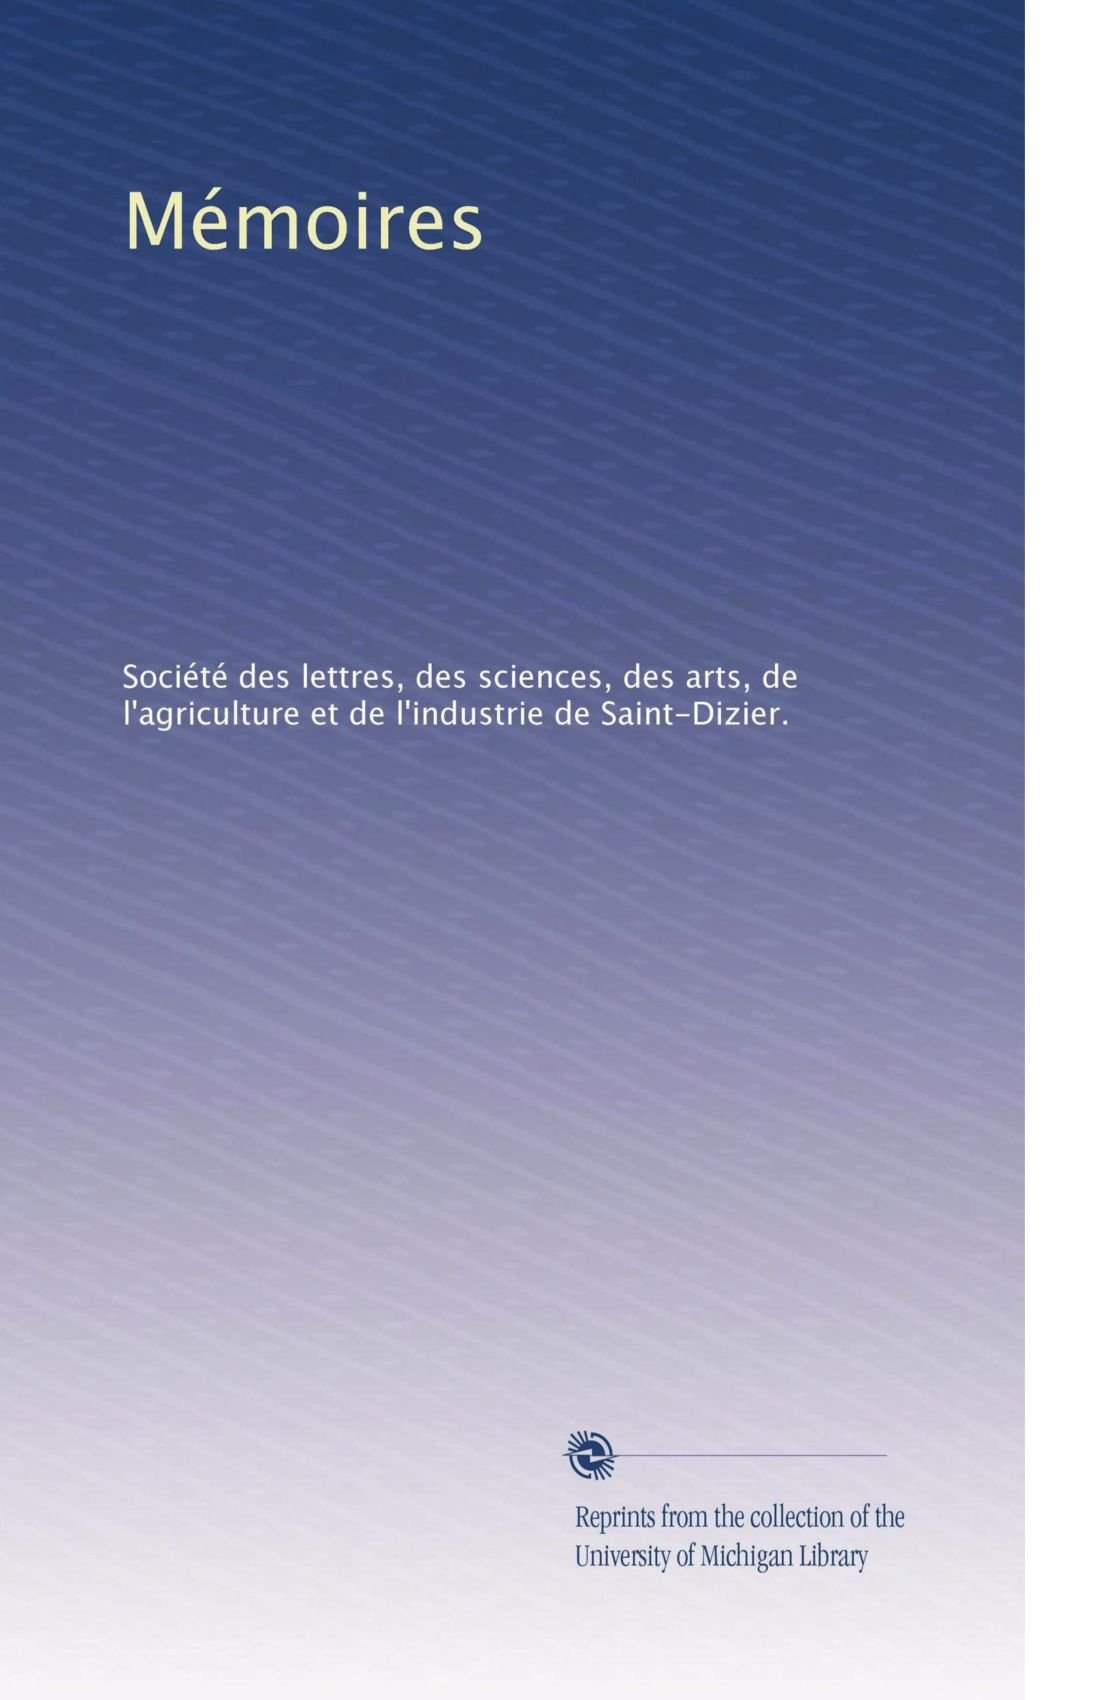 Download Mémoires (Volume 4) (French Edition) ebook